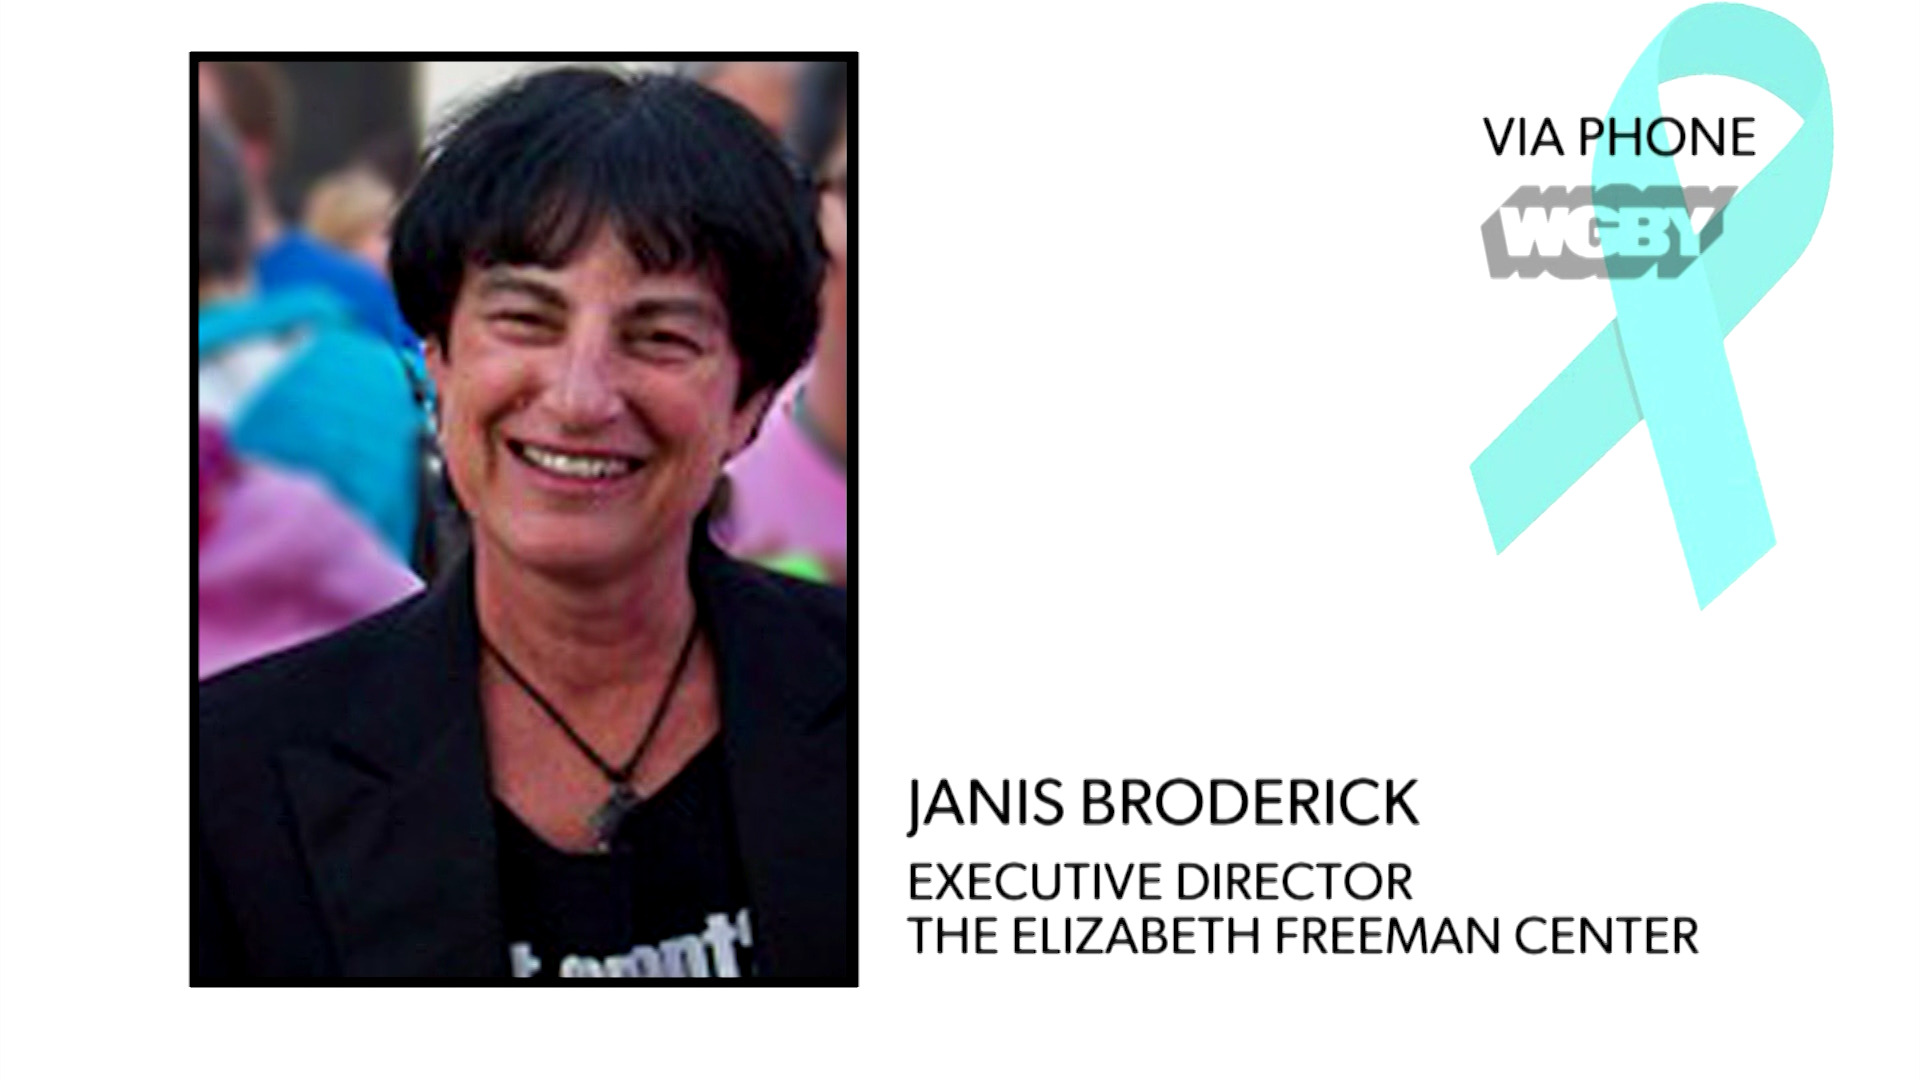 WATCH: Janis Broderick explains how the Elizabeth Freeman Center in the Berkshires is continuing to assist victims of domestic violence during the pandemic.